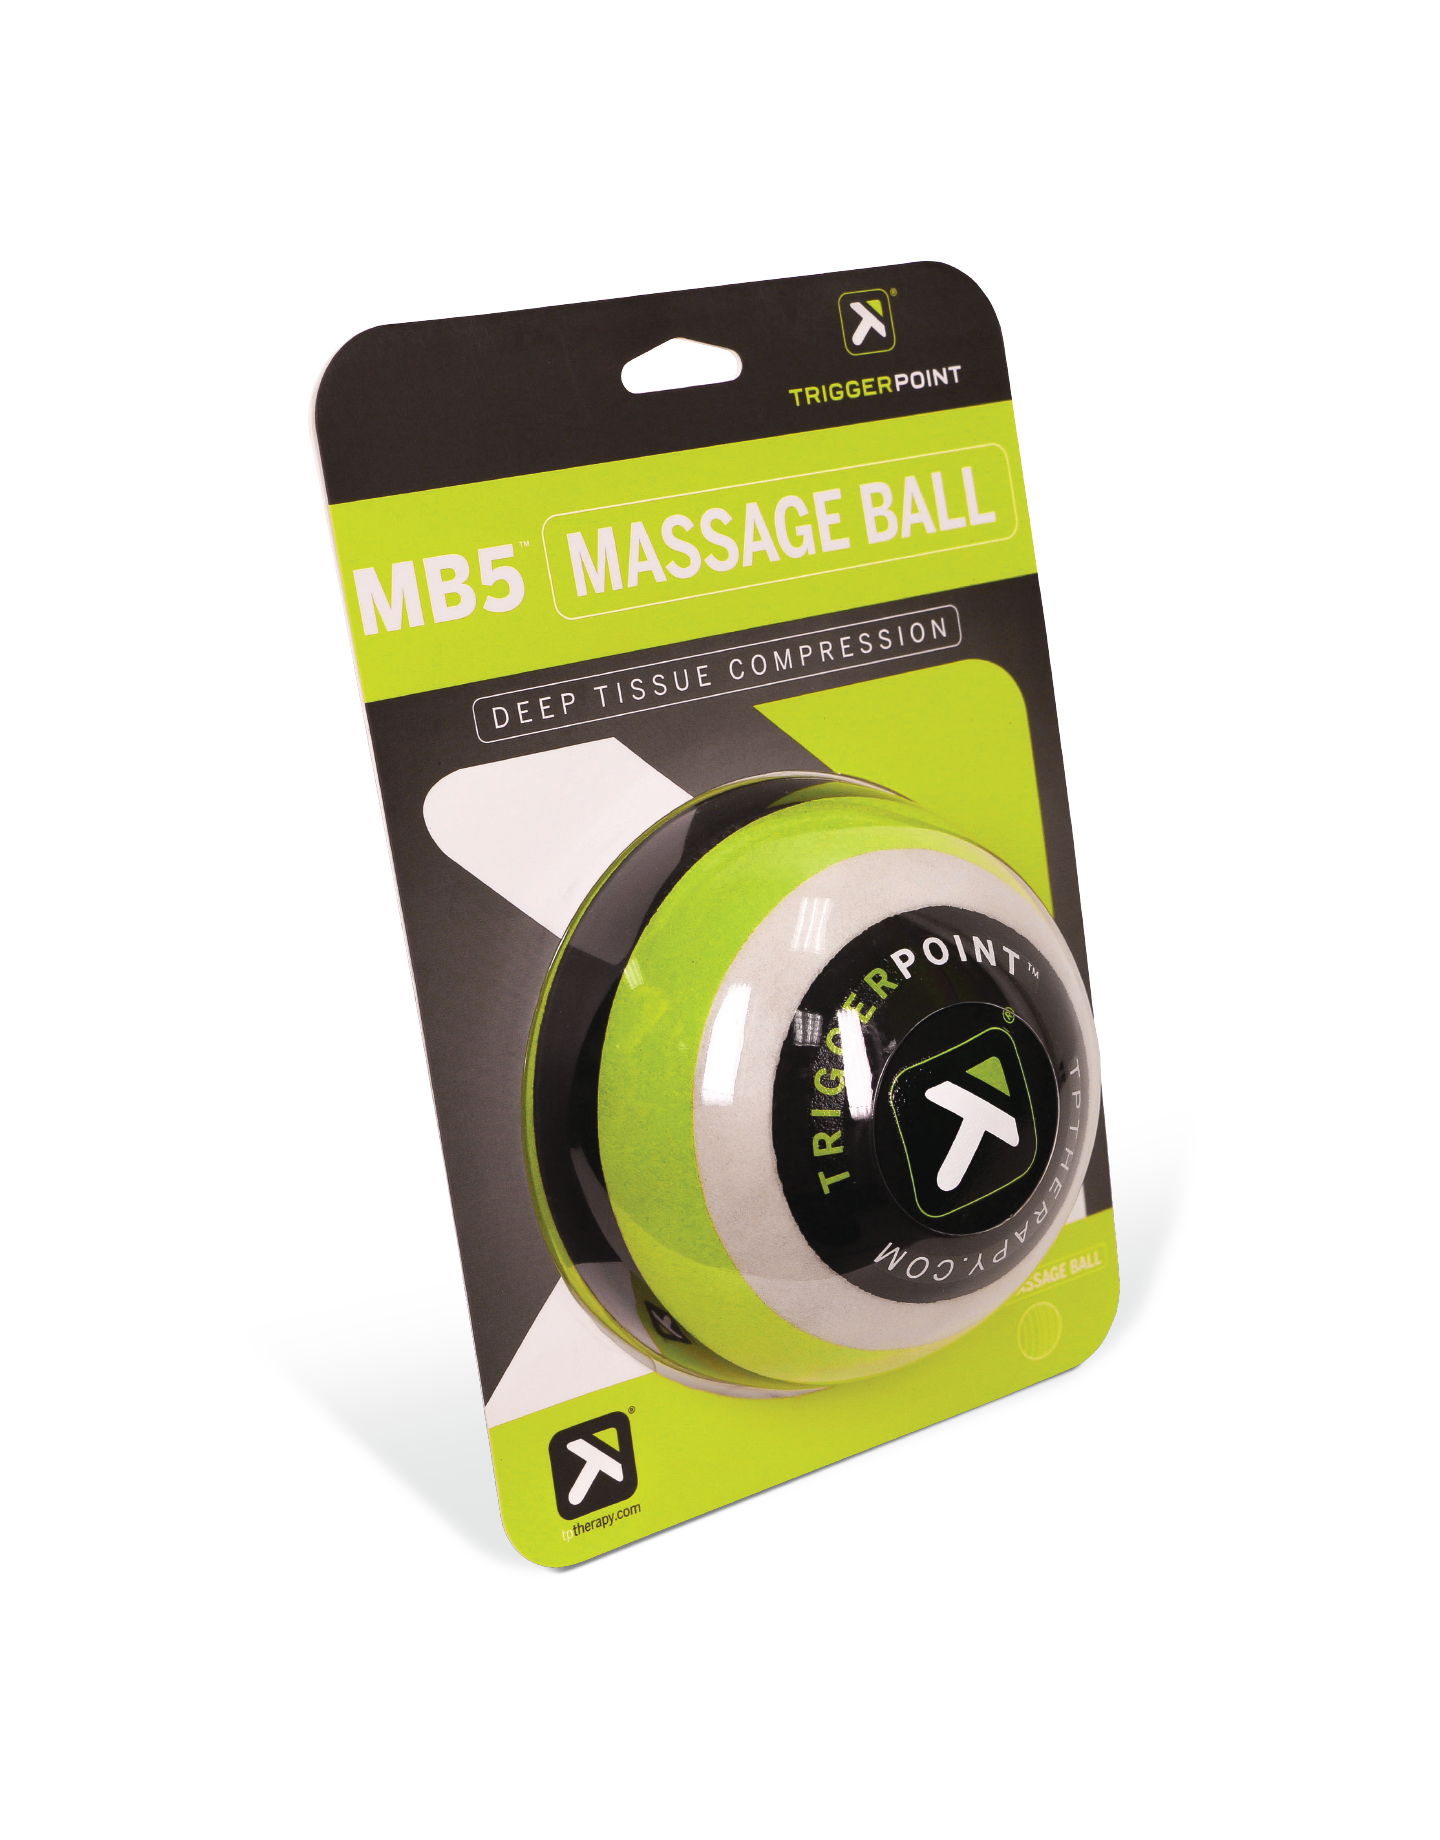 TriggerPoint TriggerPoint MB5 Massage Ball